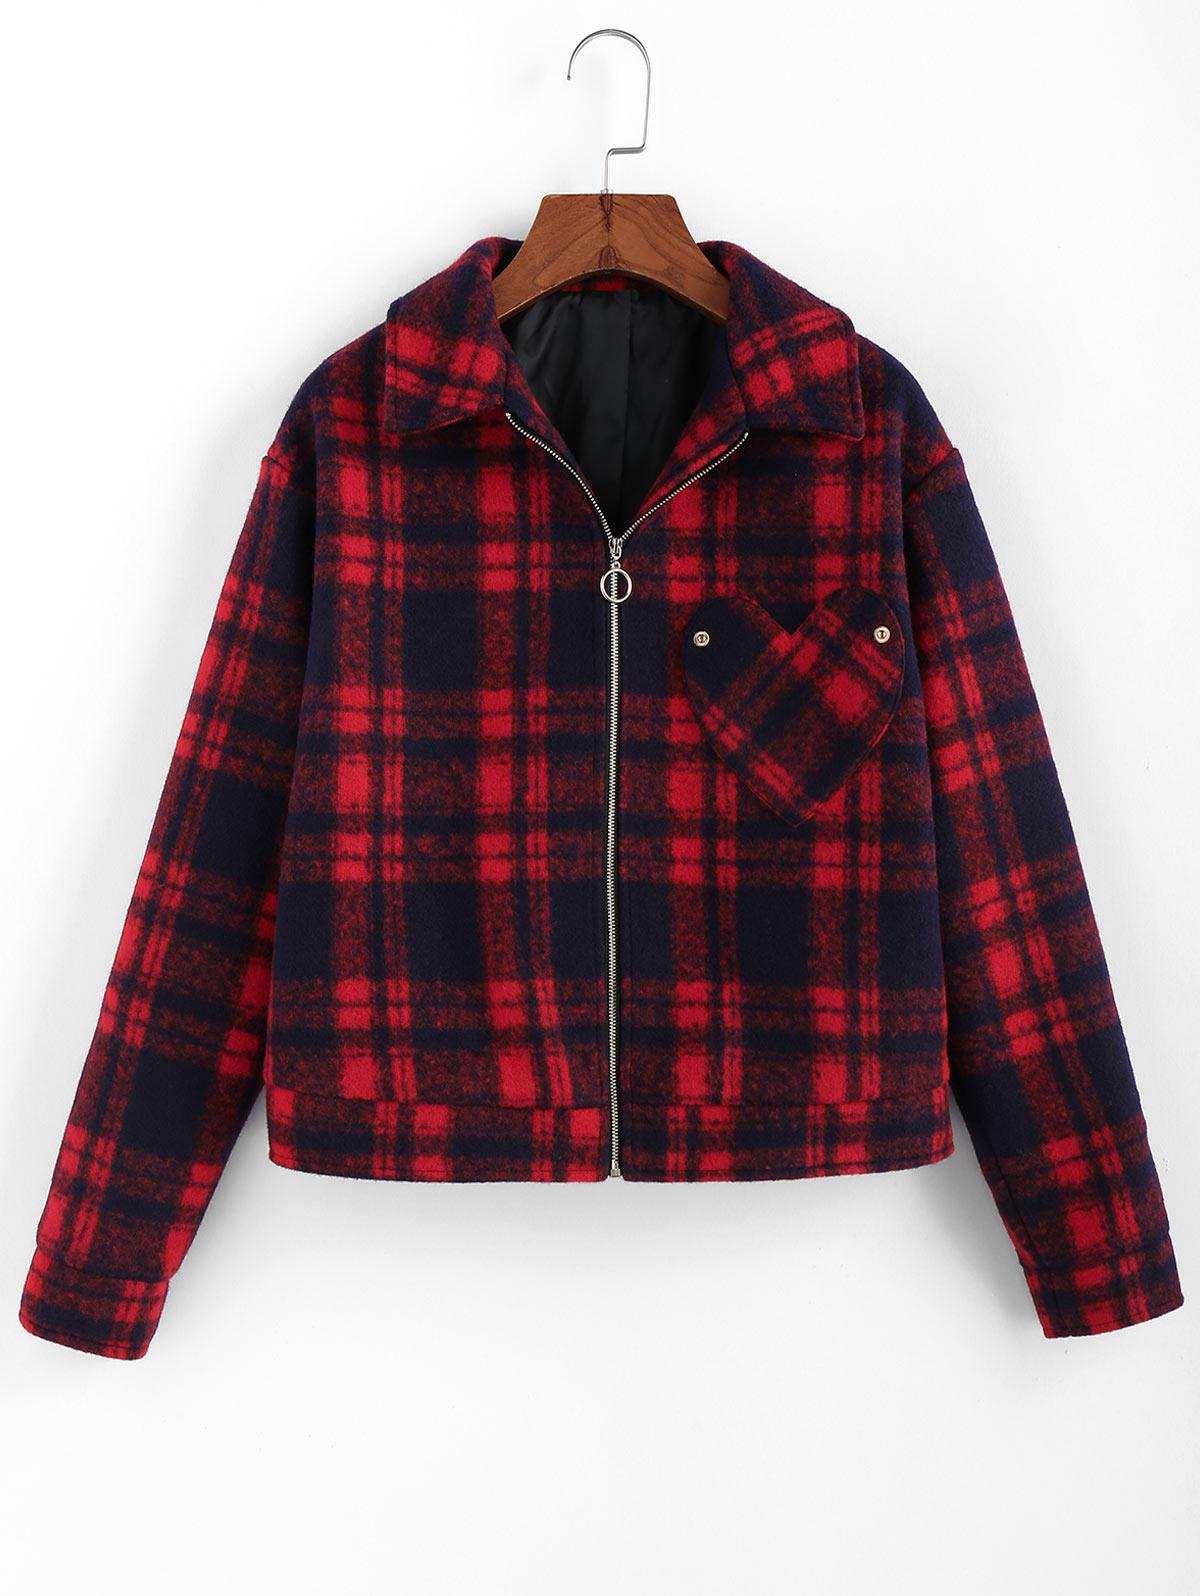 ZAFUL Plaid Heart Pocket Pull Ring Zip Jacket